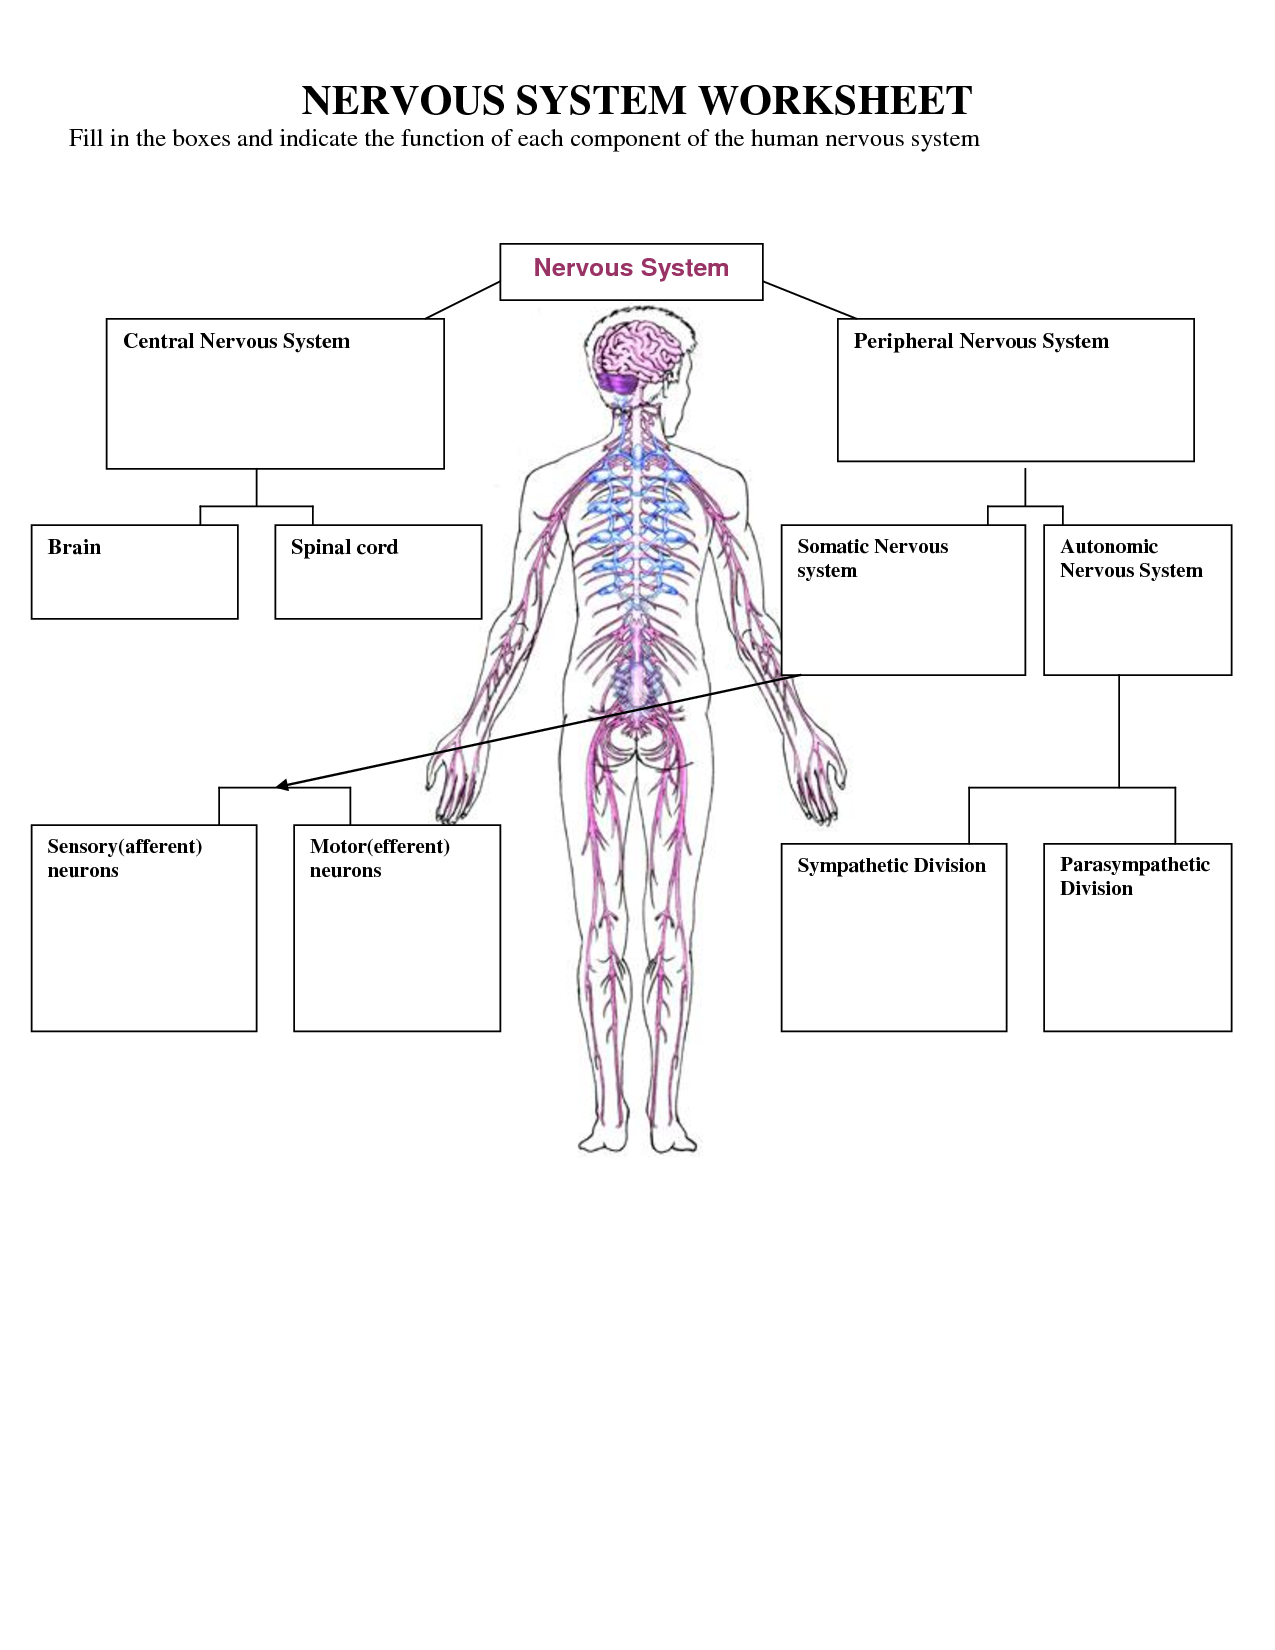 Blank diagram of central nervous system house wiring diagram symbols peripheral nervous system diagram unlabeled wiring center u2022 rh 45 63 64 79 human central nervous system peripheral nervous system diagram ccuart Image collections